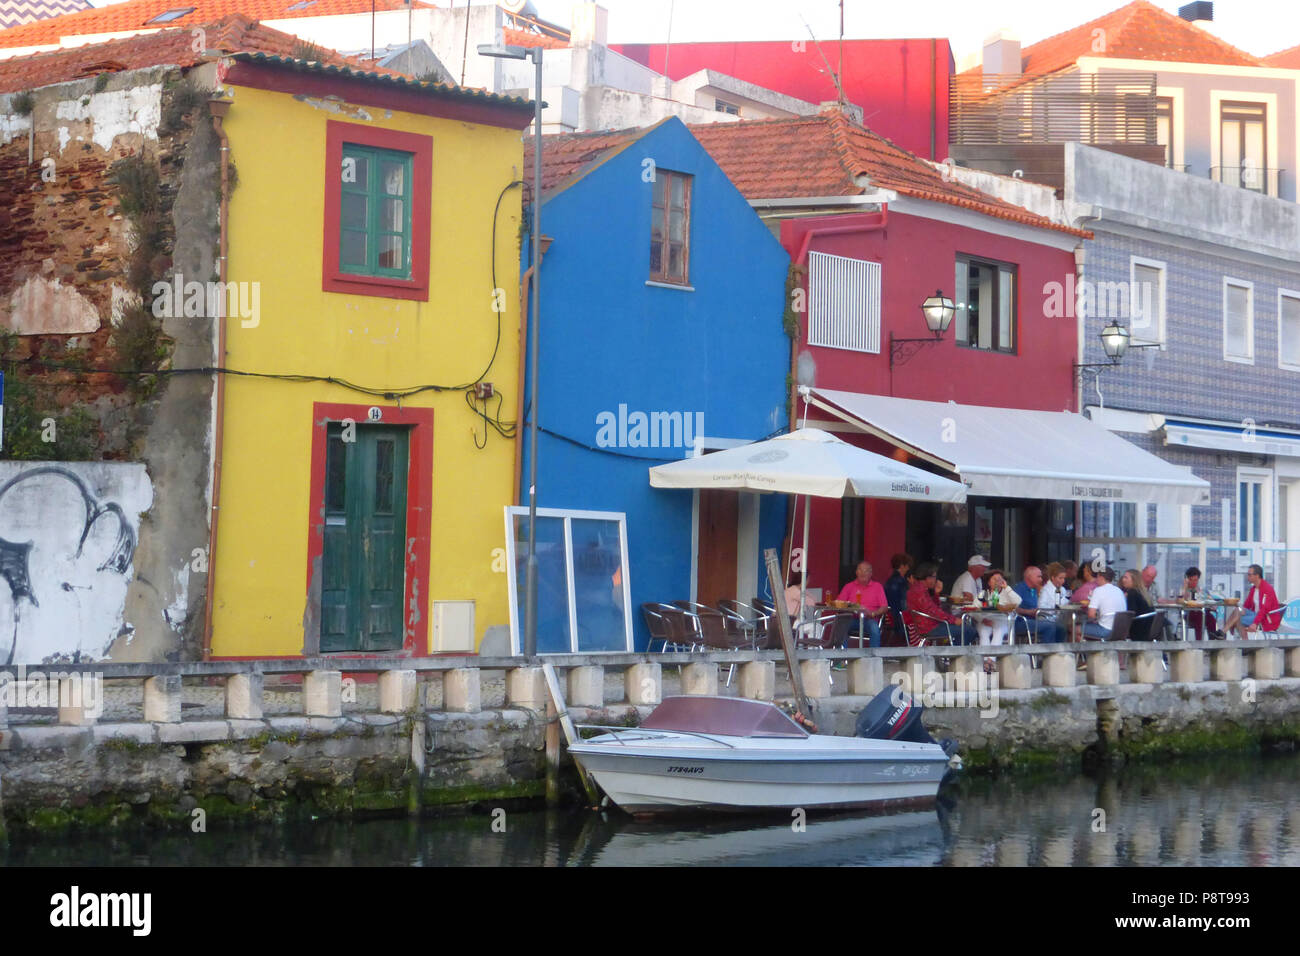 Canal waterfront and restaurant in front of old fishermen's houses at Aveiro, Portugal Stock Photo